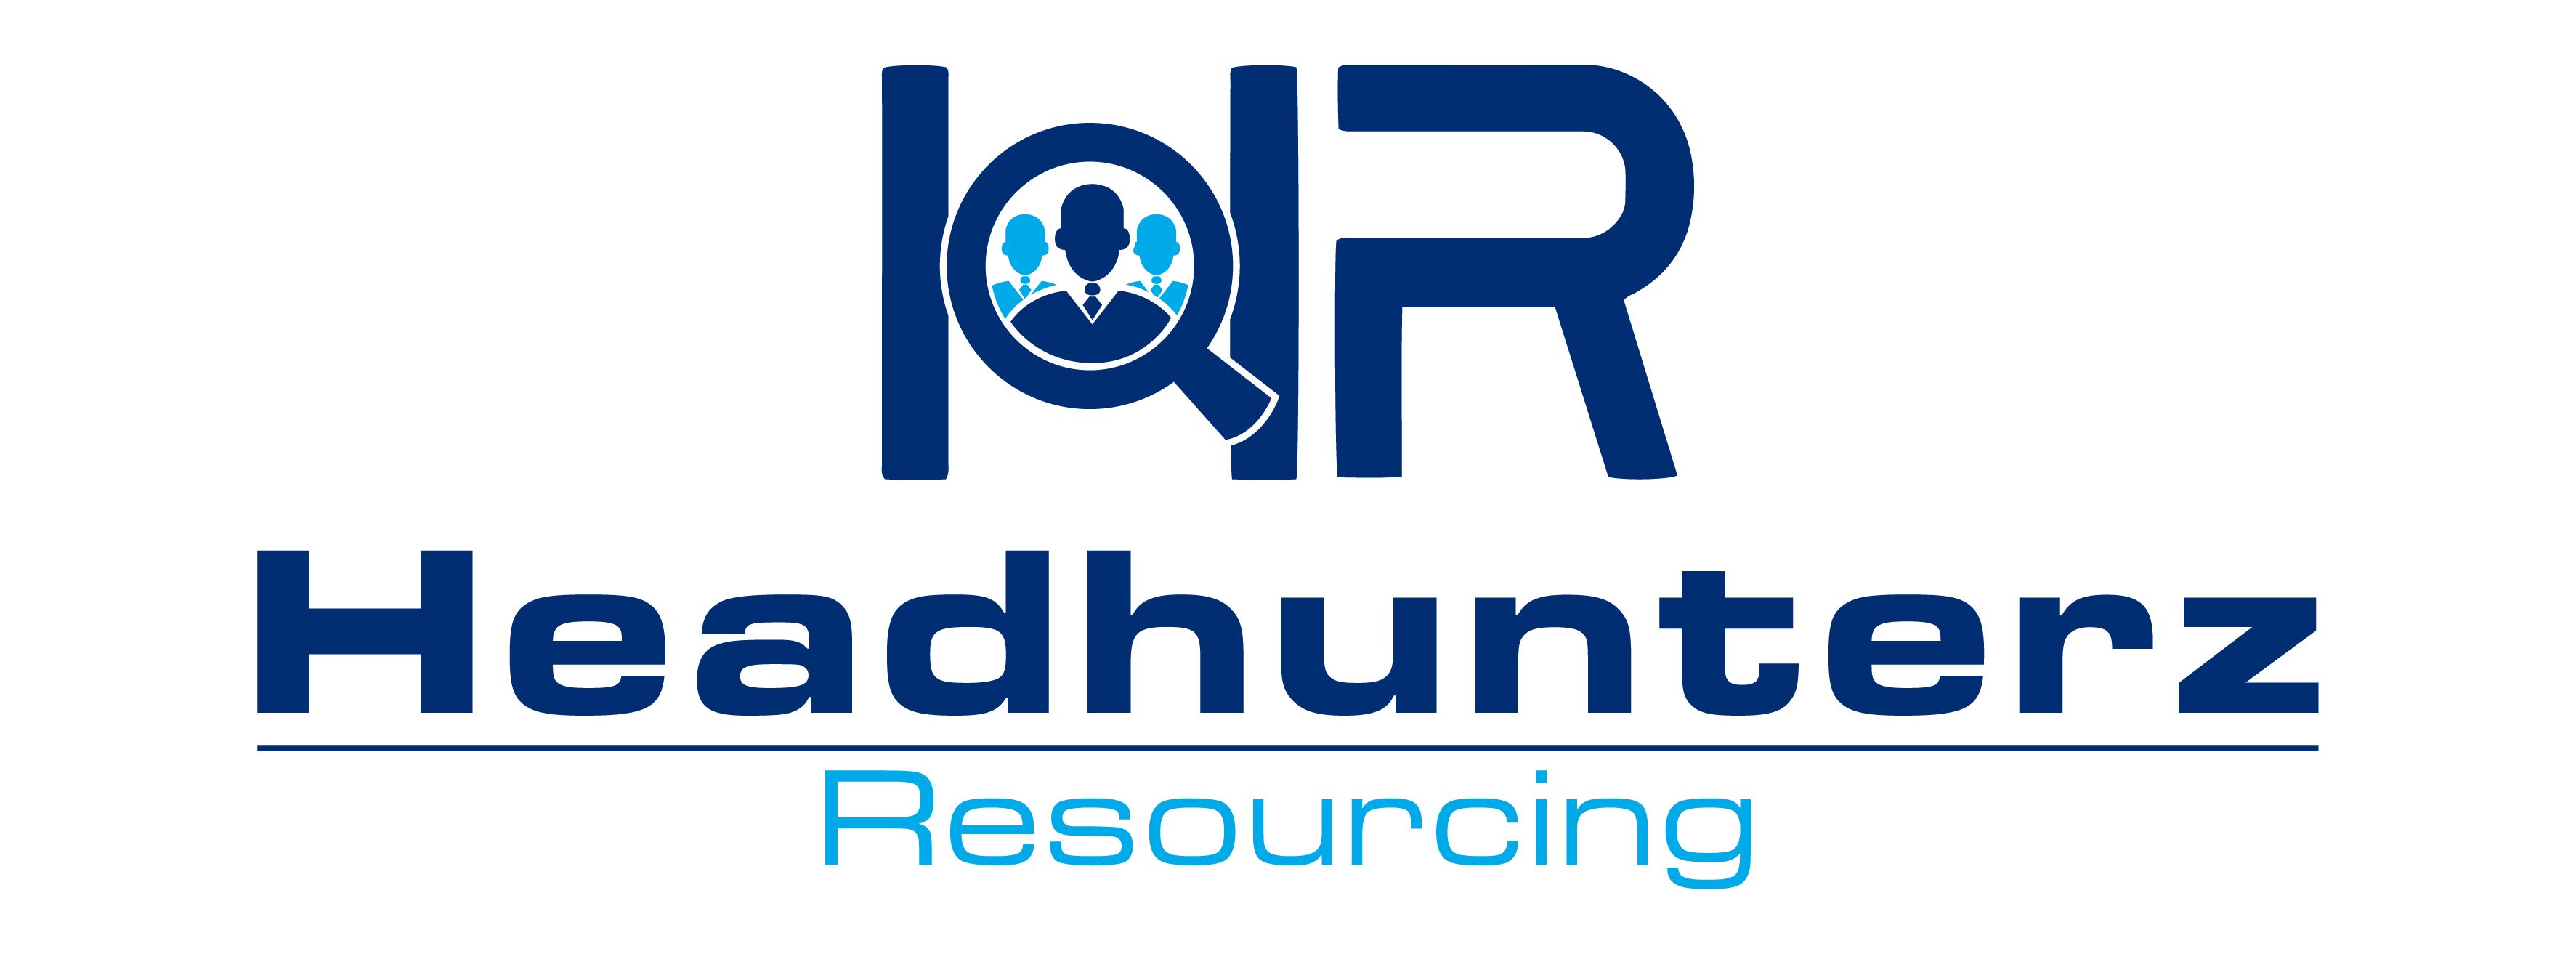 Headhunterz Resourcing